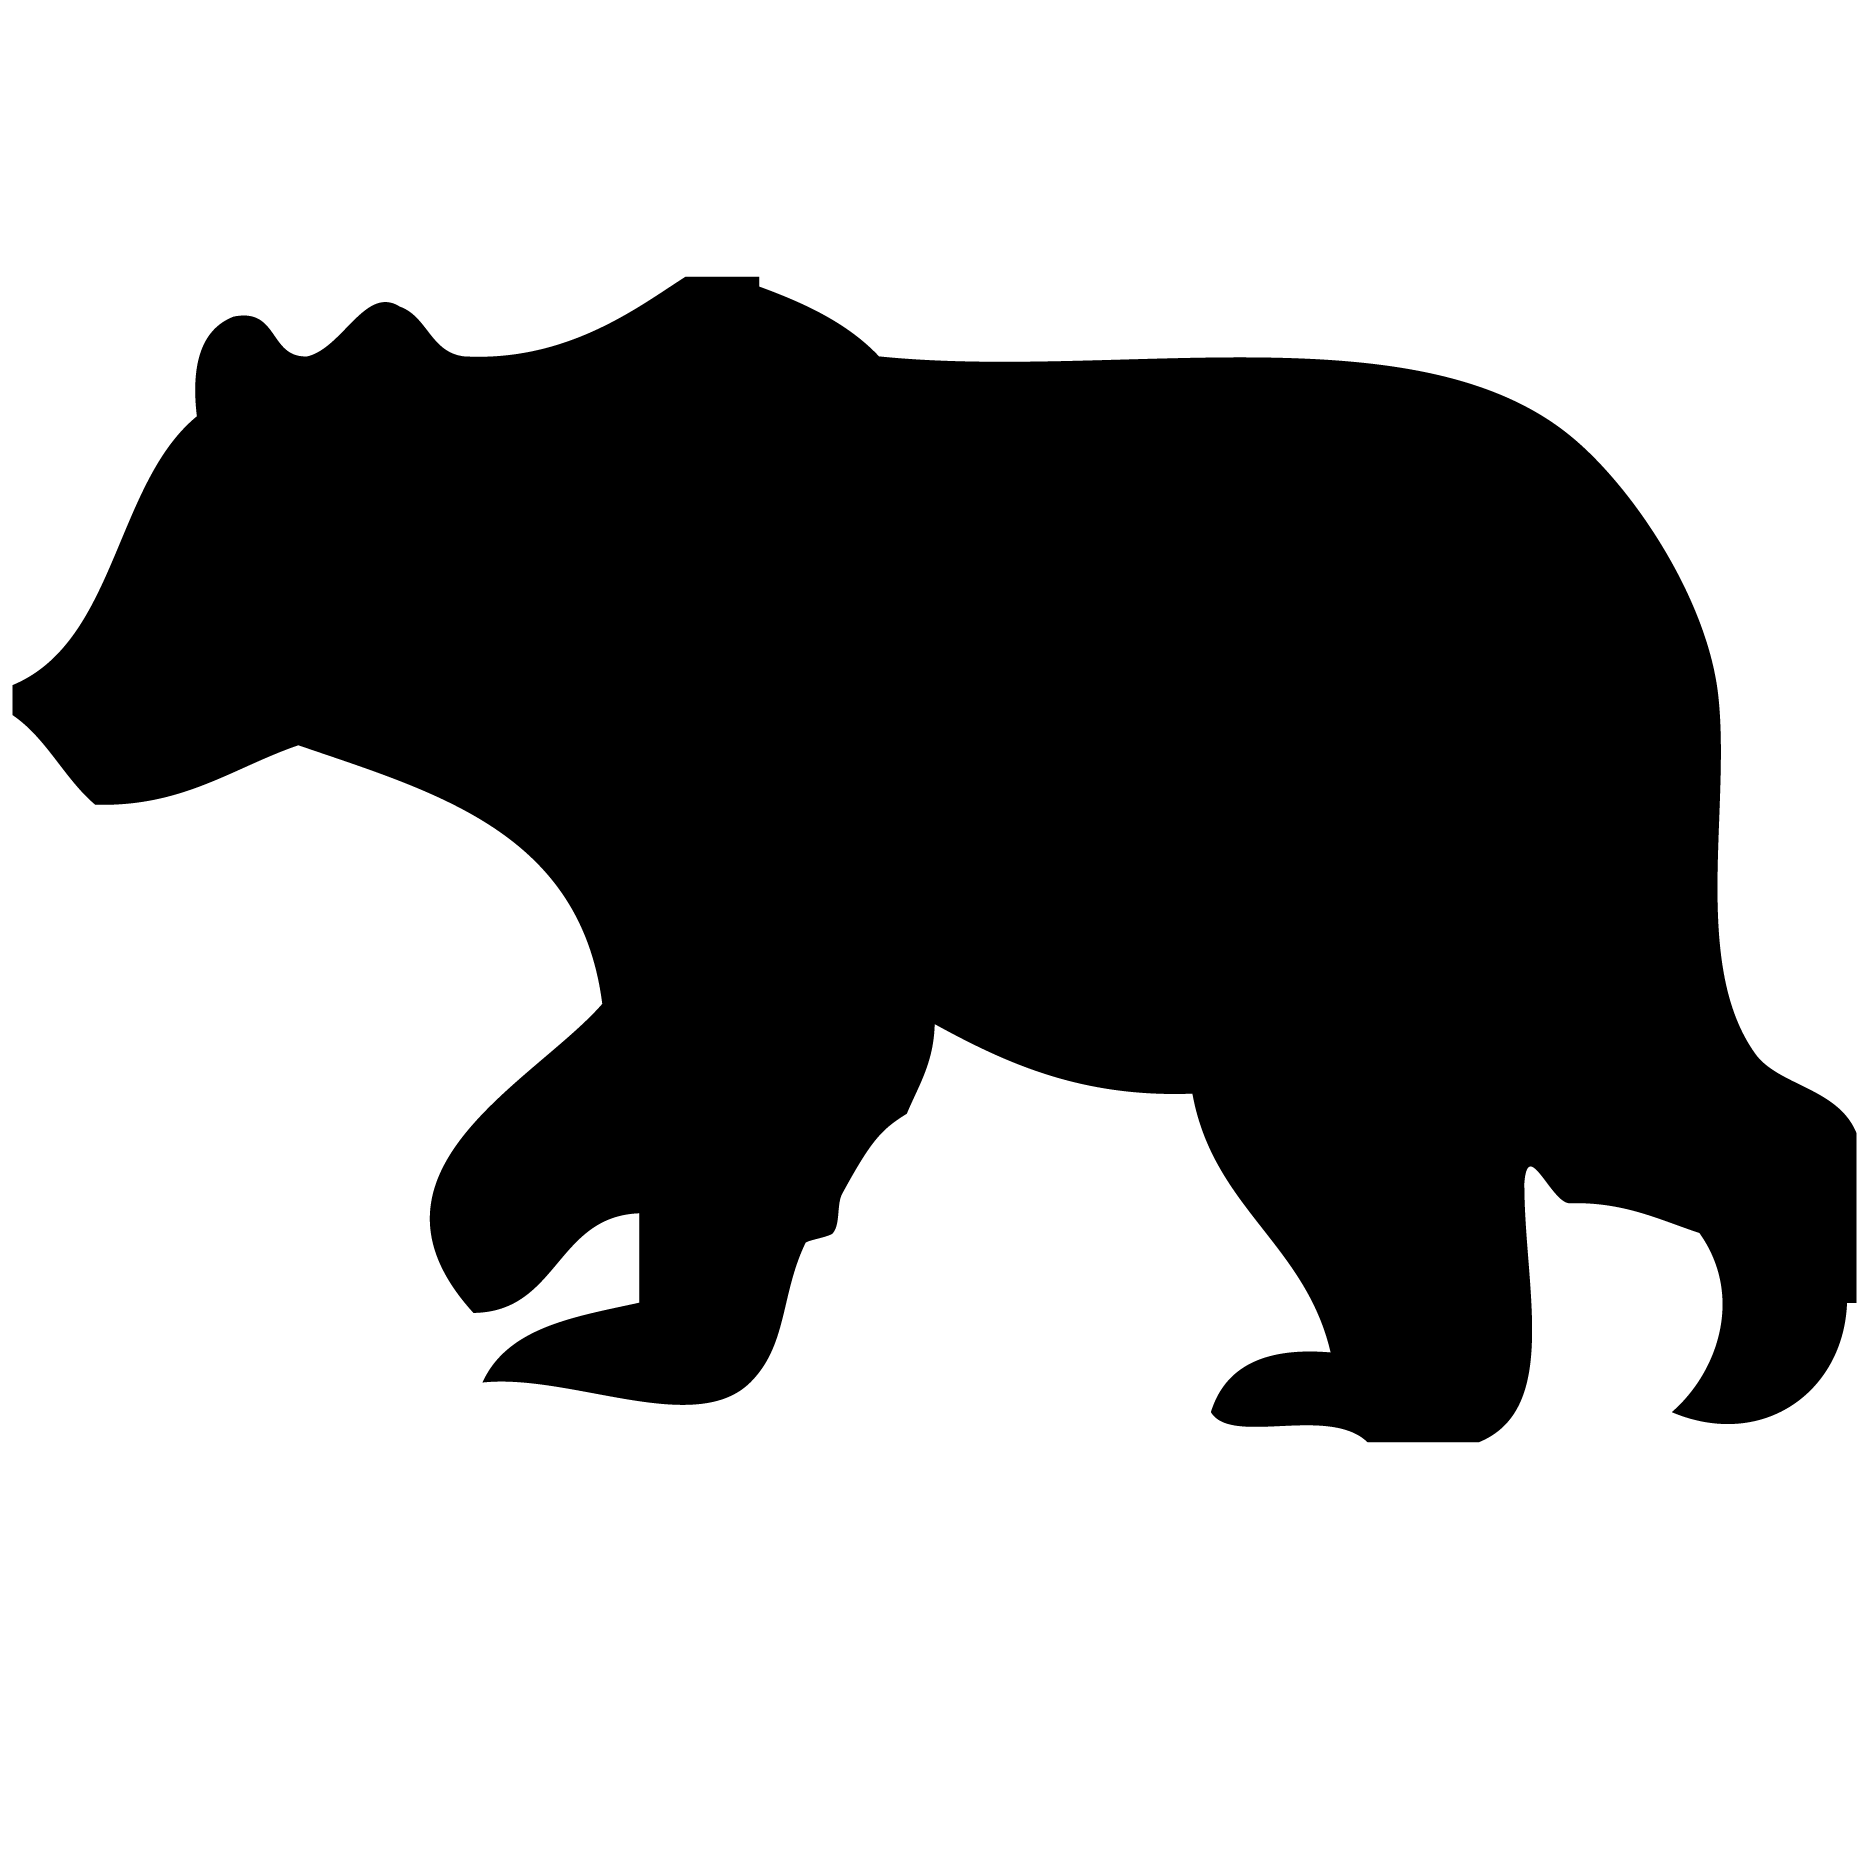 clip free stock Woodland animals silhouette at. Grizzly clipart wild bear